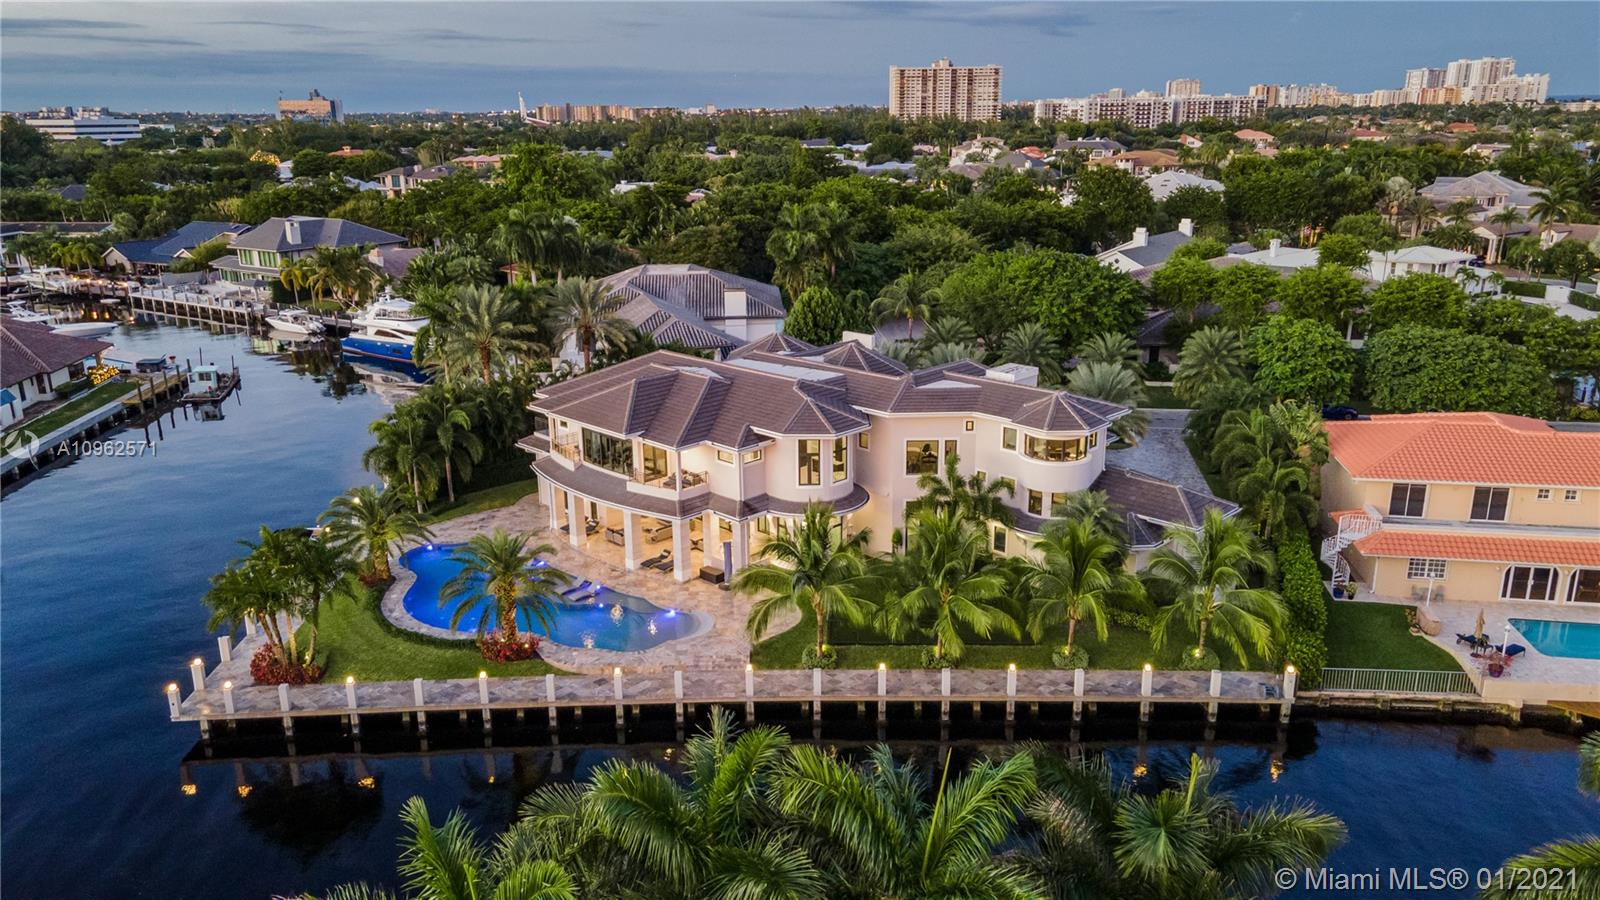 Built in 2017, this spectacular custom estate w/ 255 ft of water frontage sits on an oversized point lot located in the exclusive gated community of Bay Colony in East Fort Lauderdale, one mile from Pine Crest School. A modern transitional design w/ elegant architecture & luxurious detailing boasts captivating views from every room & is conveniently located minutes from ocean access. Features of this smart home include 6 bedrooms w/ ensuite bathrooms + media room + gym + playroom, chef's kitchen w/ Wolf appliances, dining room that seats 20, indoor/outdoor living & entertainment, oversized resort style pool, A/C garage storage for 8 cars & full home 125 KW generator. Expansive master suite boasts a dreamy 2 story closet, double balconies, steam shower & private massage room +much more!